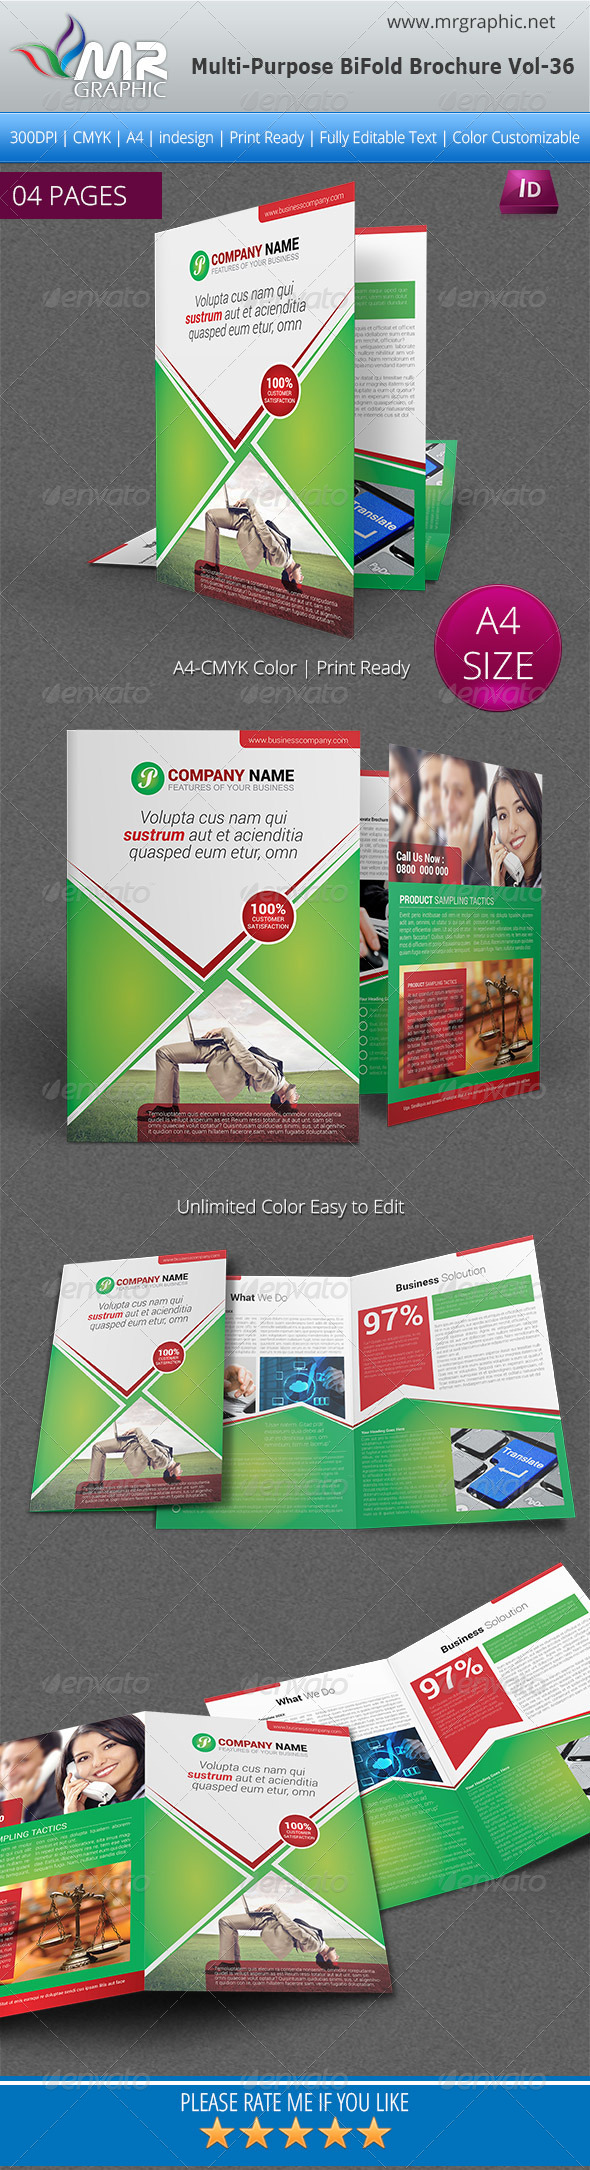 Multipurpose Bi-fold Brochure Template Vol-36 - Corporate Brochures